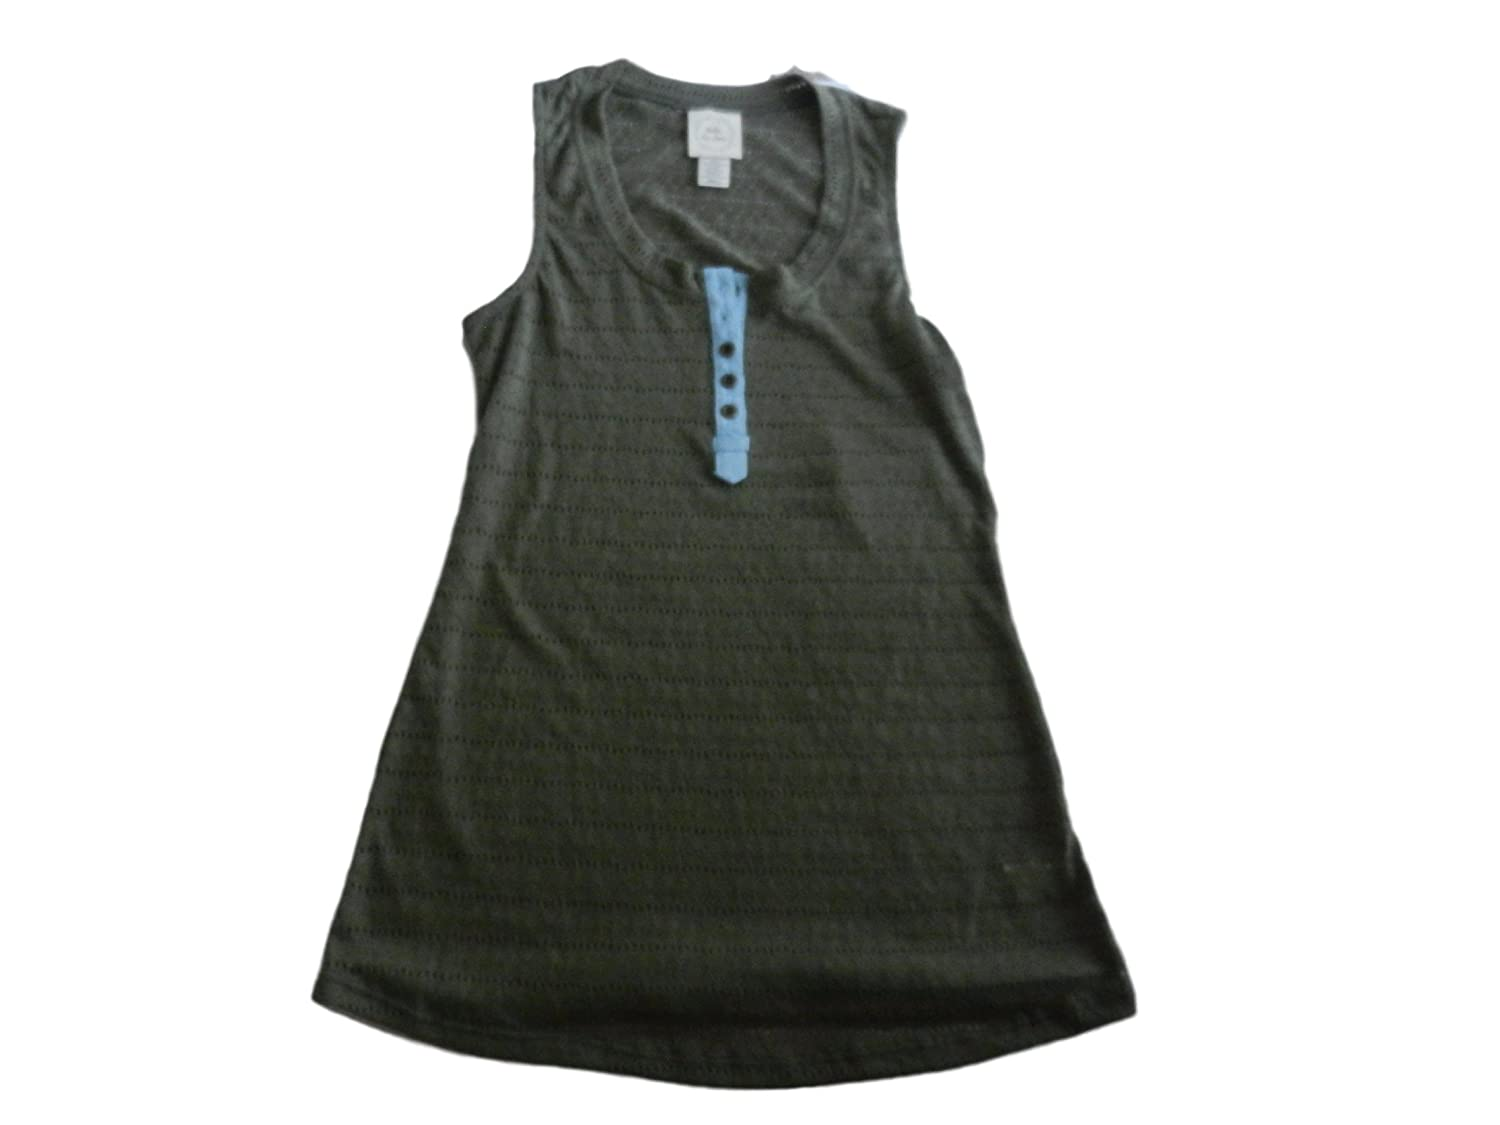 BELLE DU JOUR CARGO GREEN TANK TOP